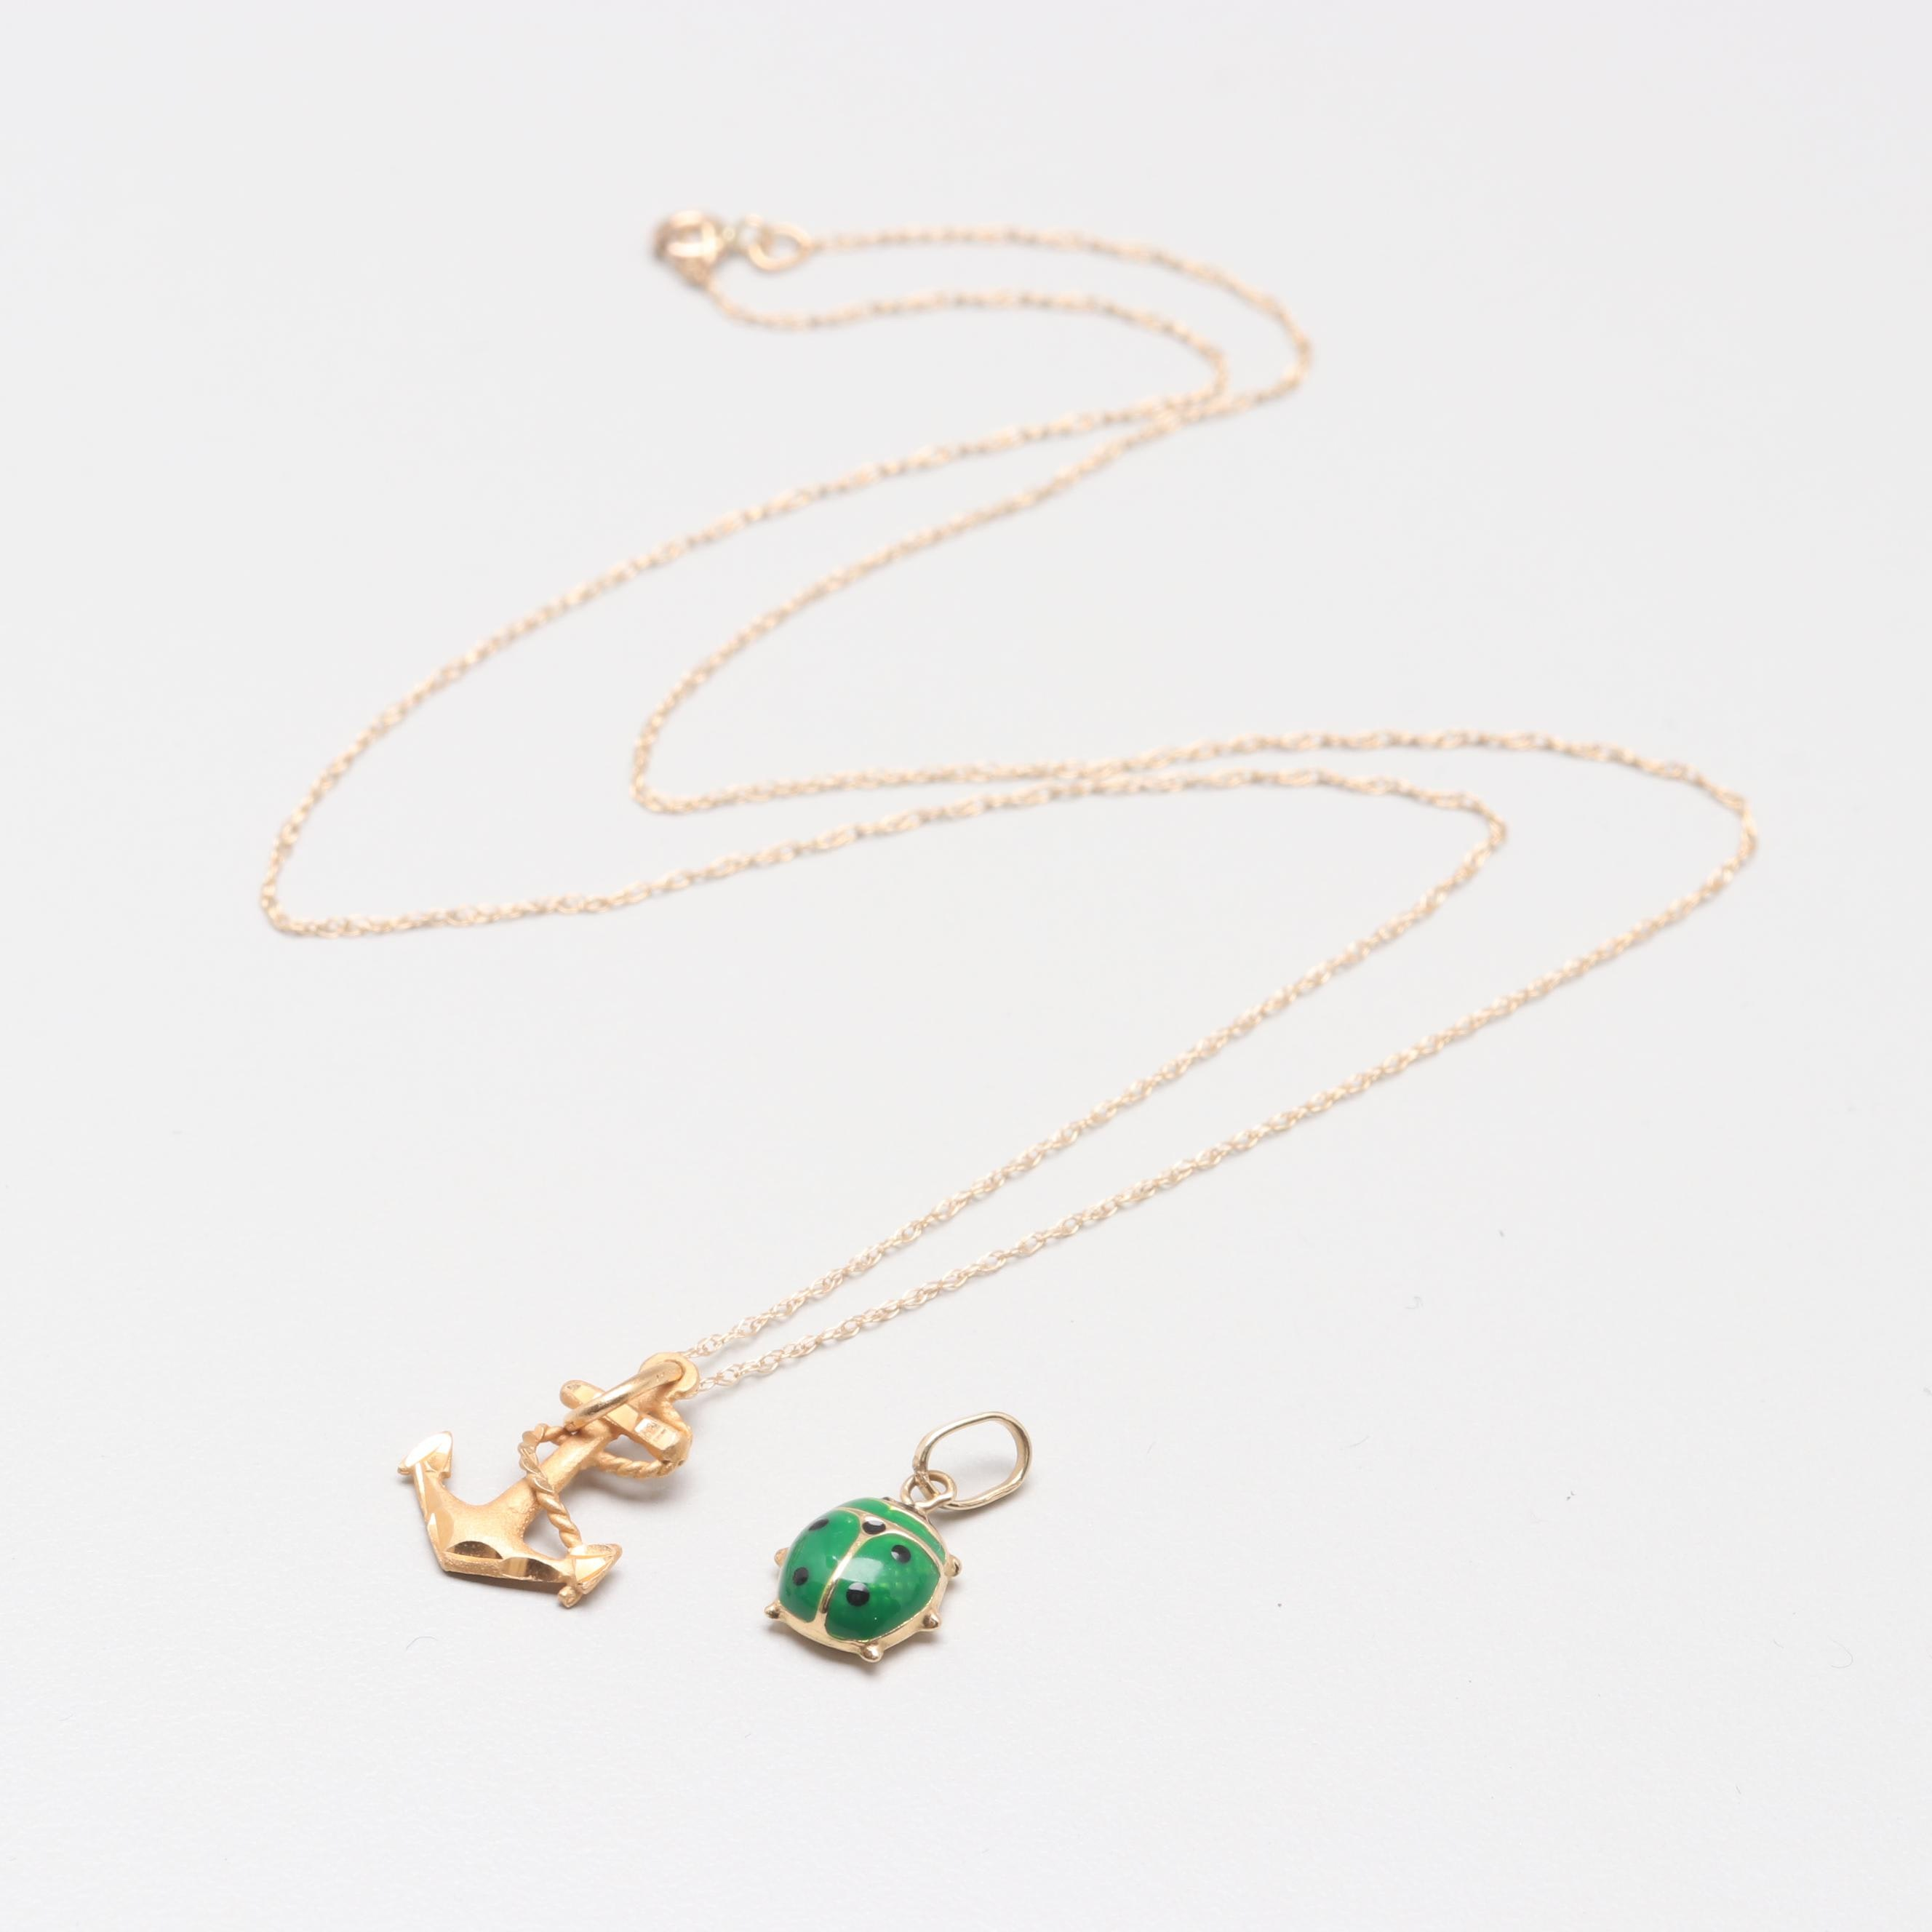 14K Yellow Gold Necklace and Enamel Charm